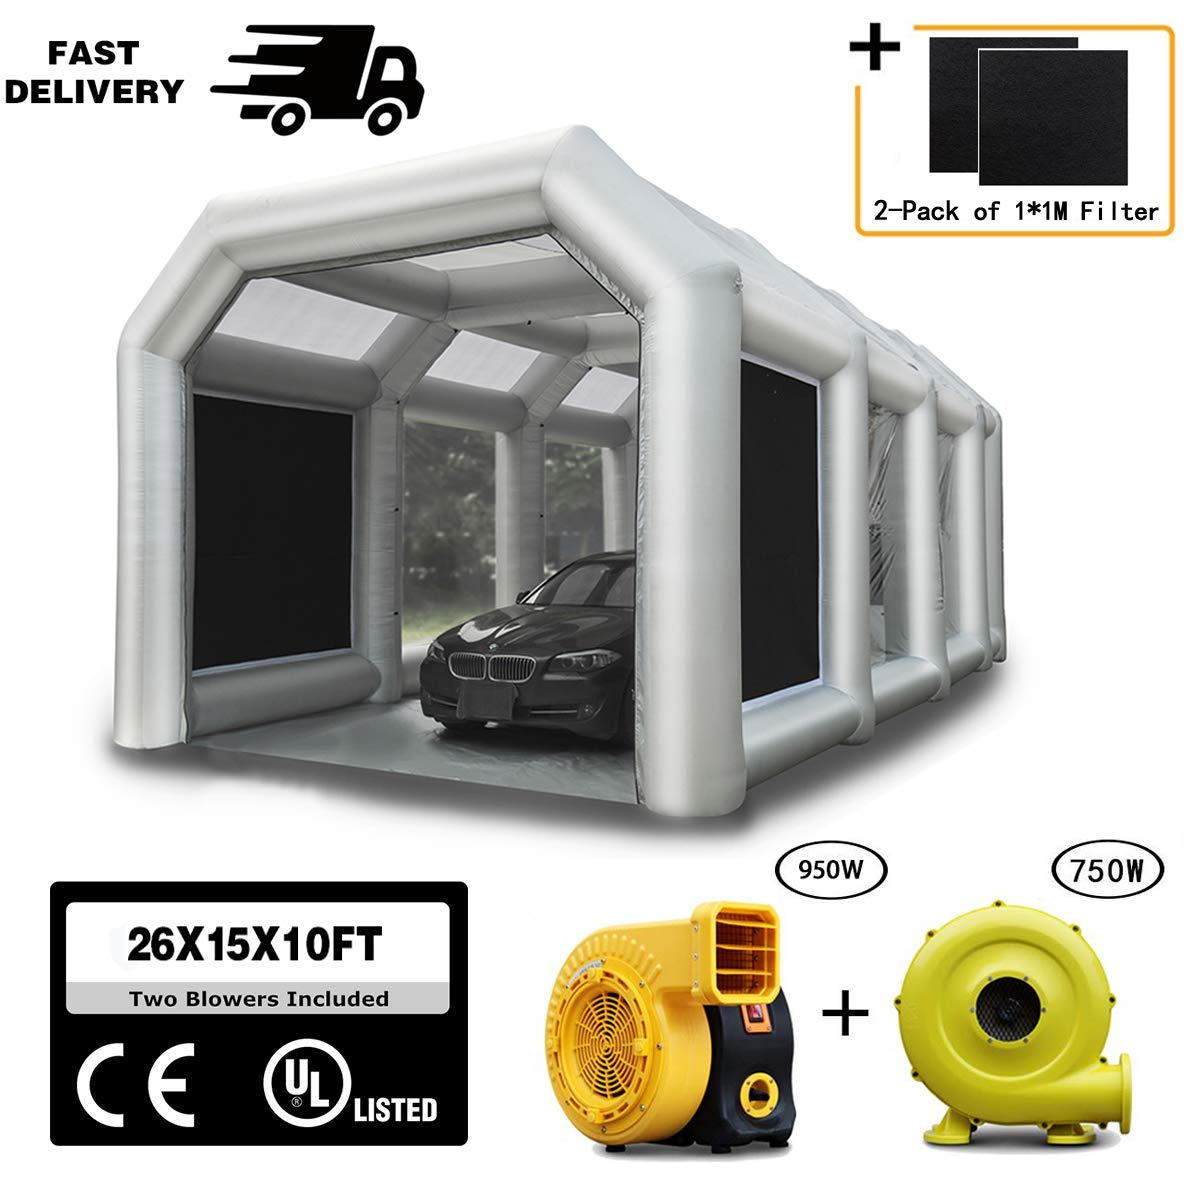 LuckyWe Inflatable Spray Booth Car Paint Room Large Spray Tent 26x15x10FT with 2 Blowers Painting Booth for Spray Paint Car Parking Tent Portable Garage with Filter System by LuckyWe